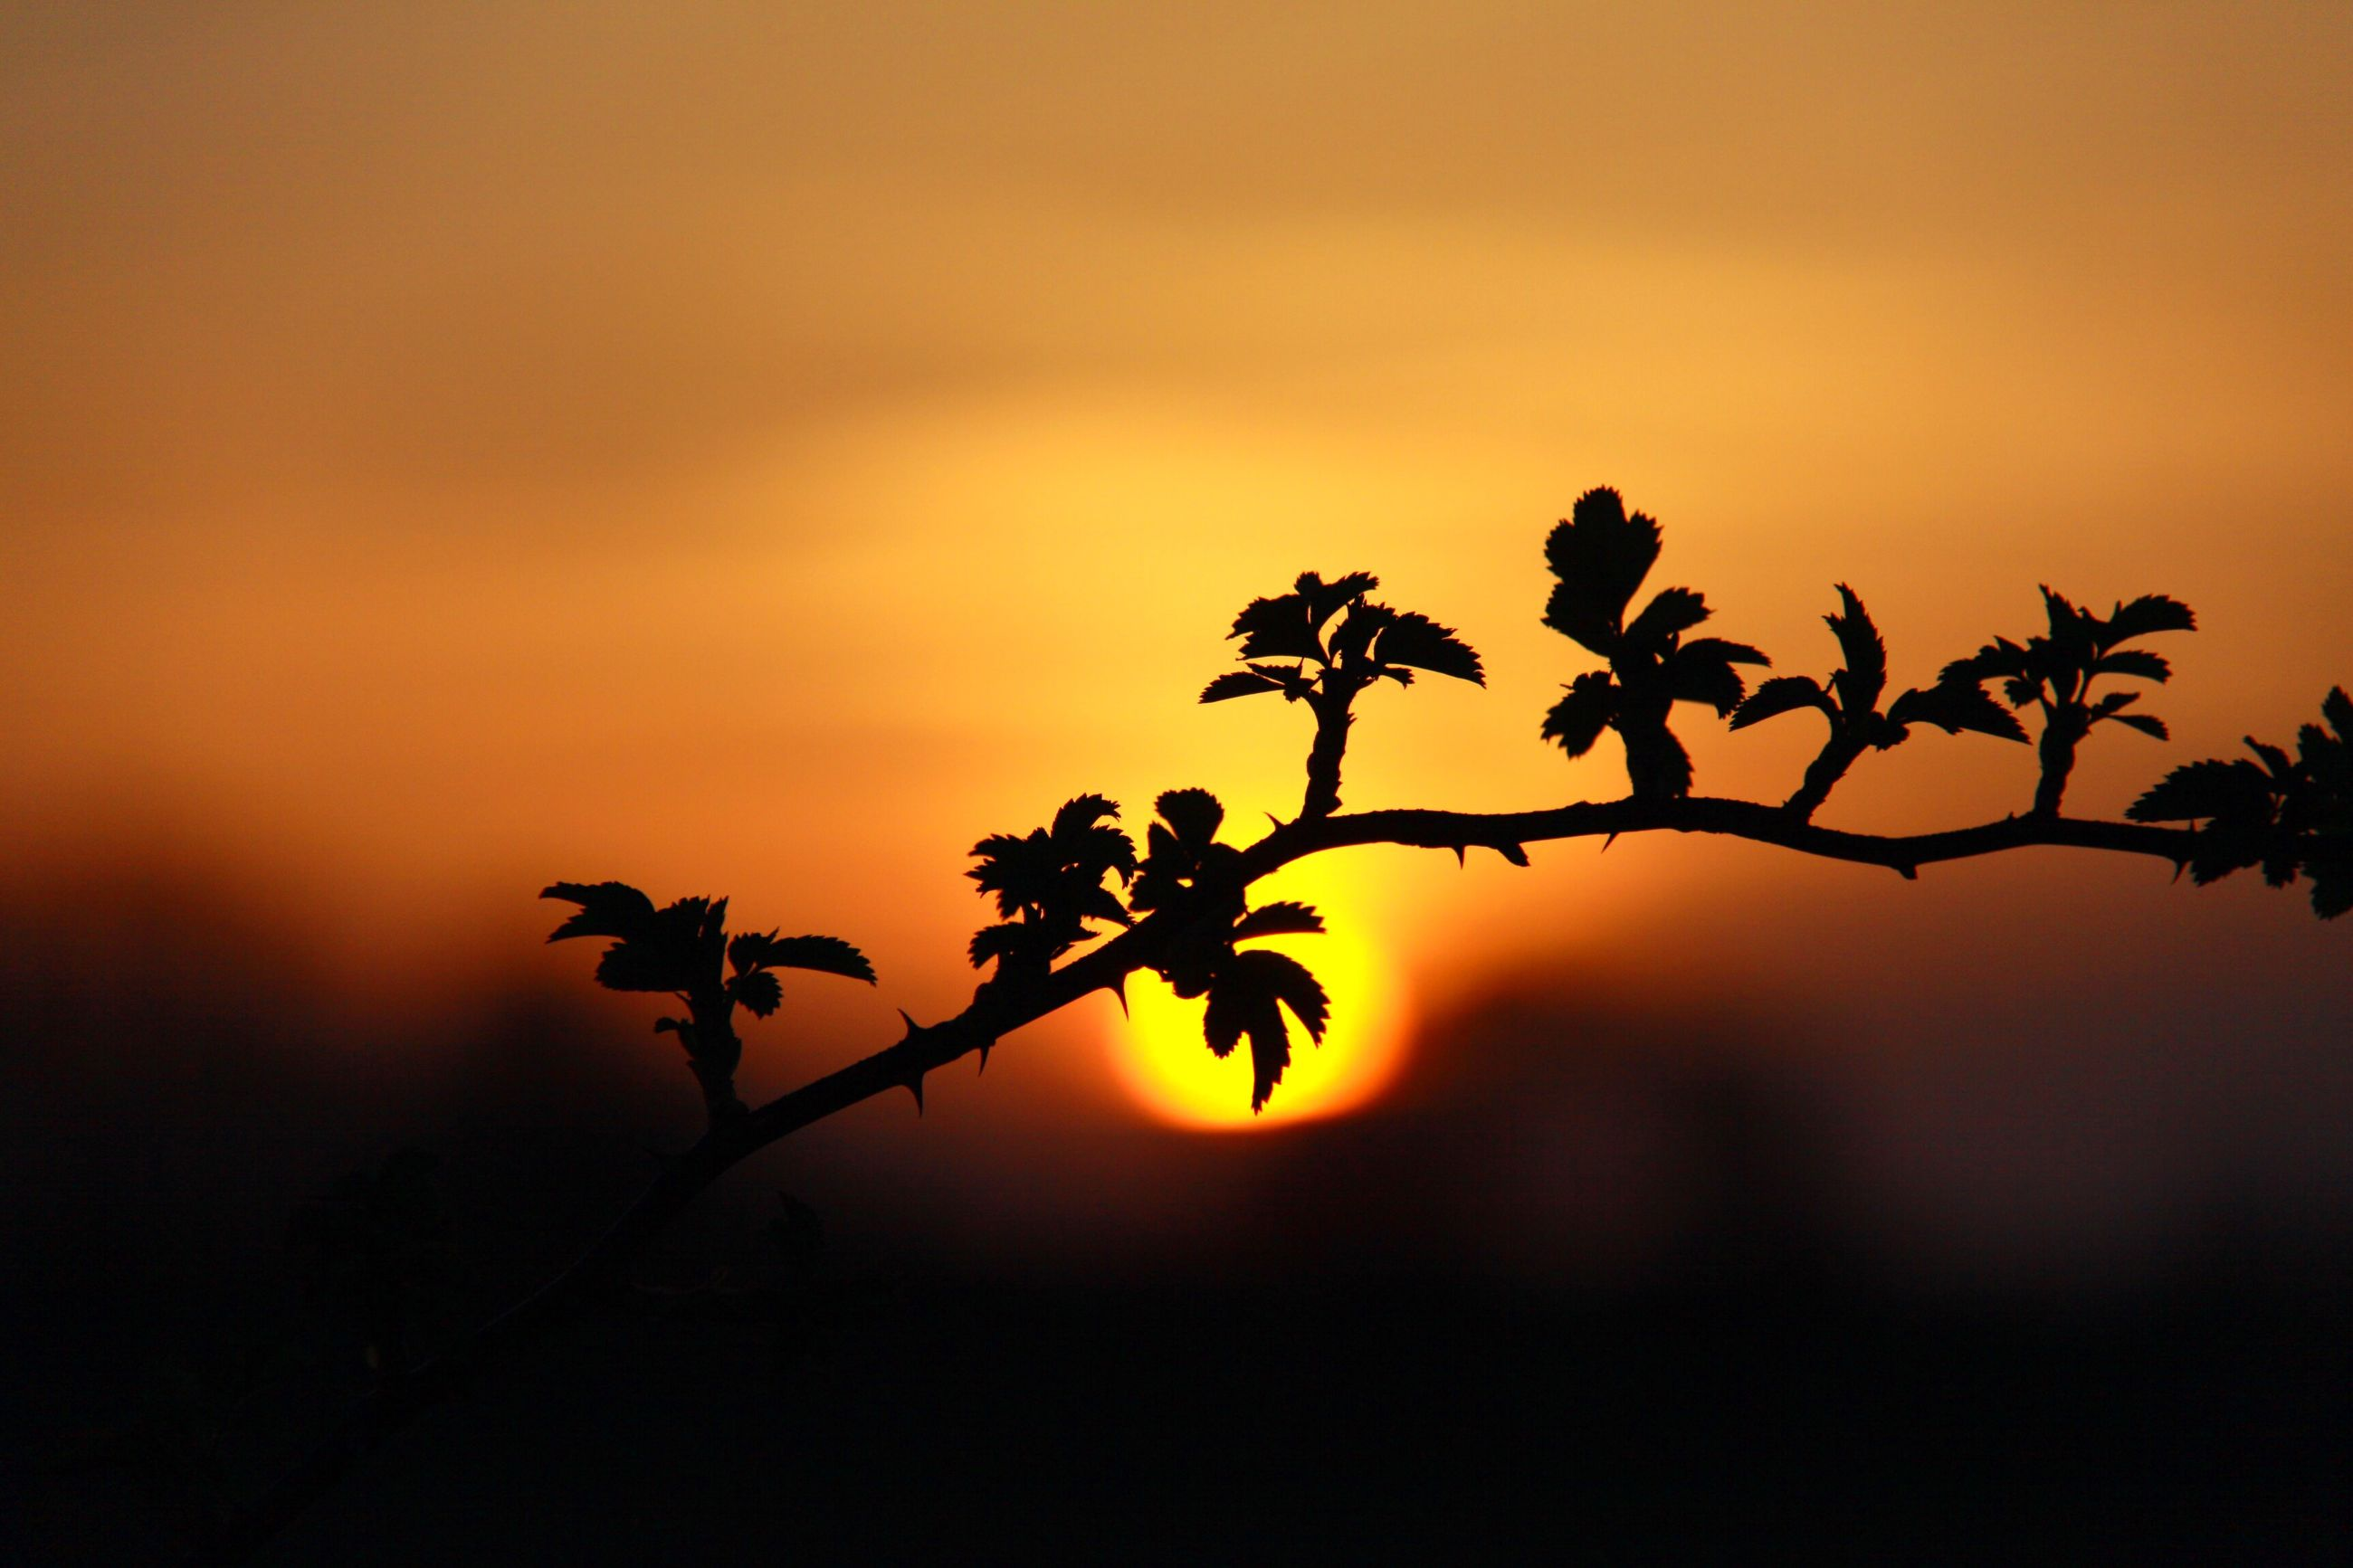 sunset, orange color, silhouette, growth, plant, beauty in nature, sun, nature, stem, flower, sky, focus on foreground, freshness, fragility, close-up, leaf, bud, tranquility, twig, branch